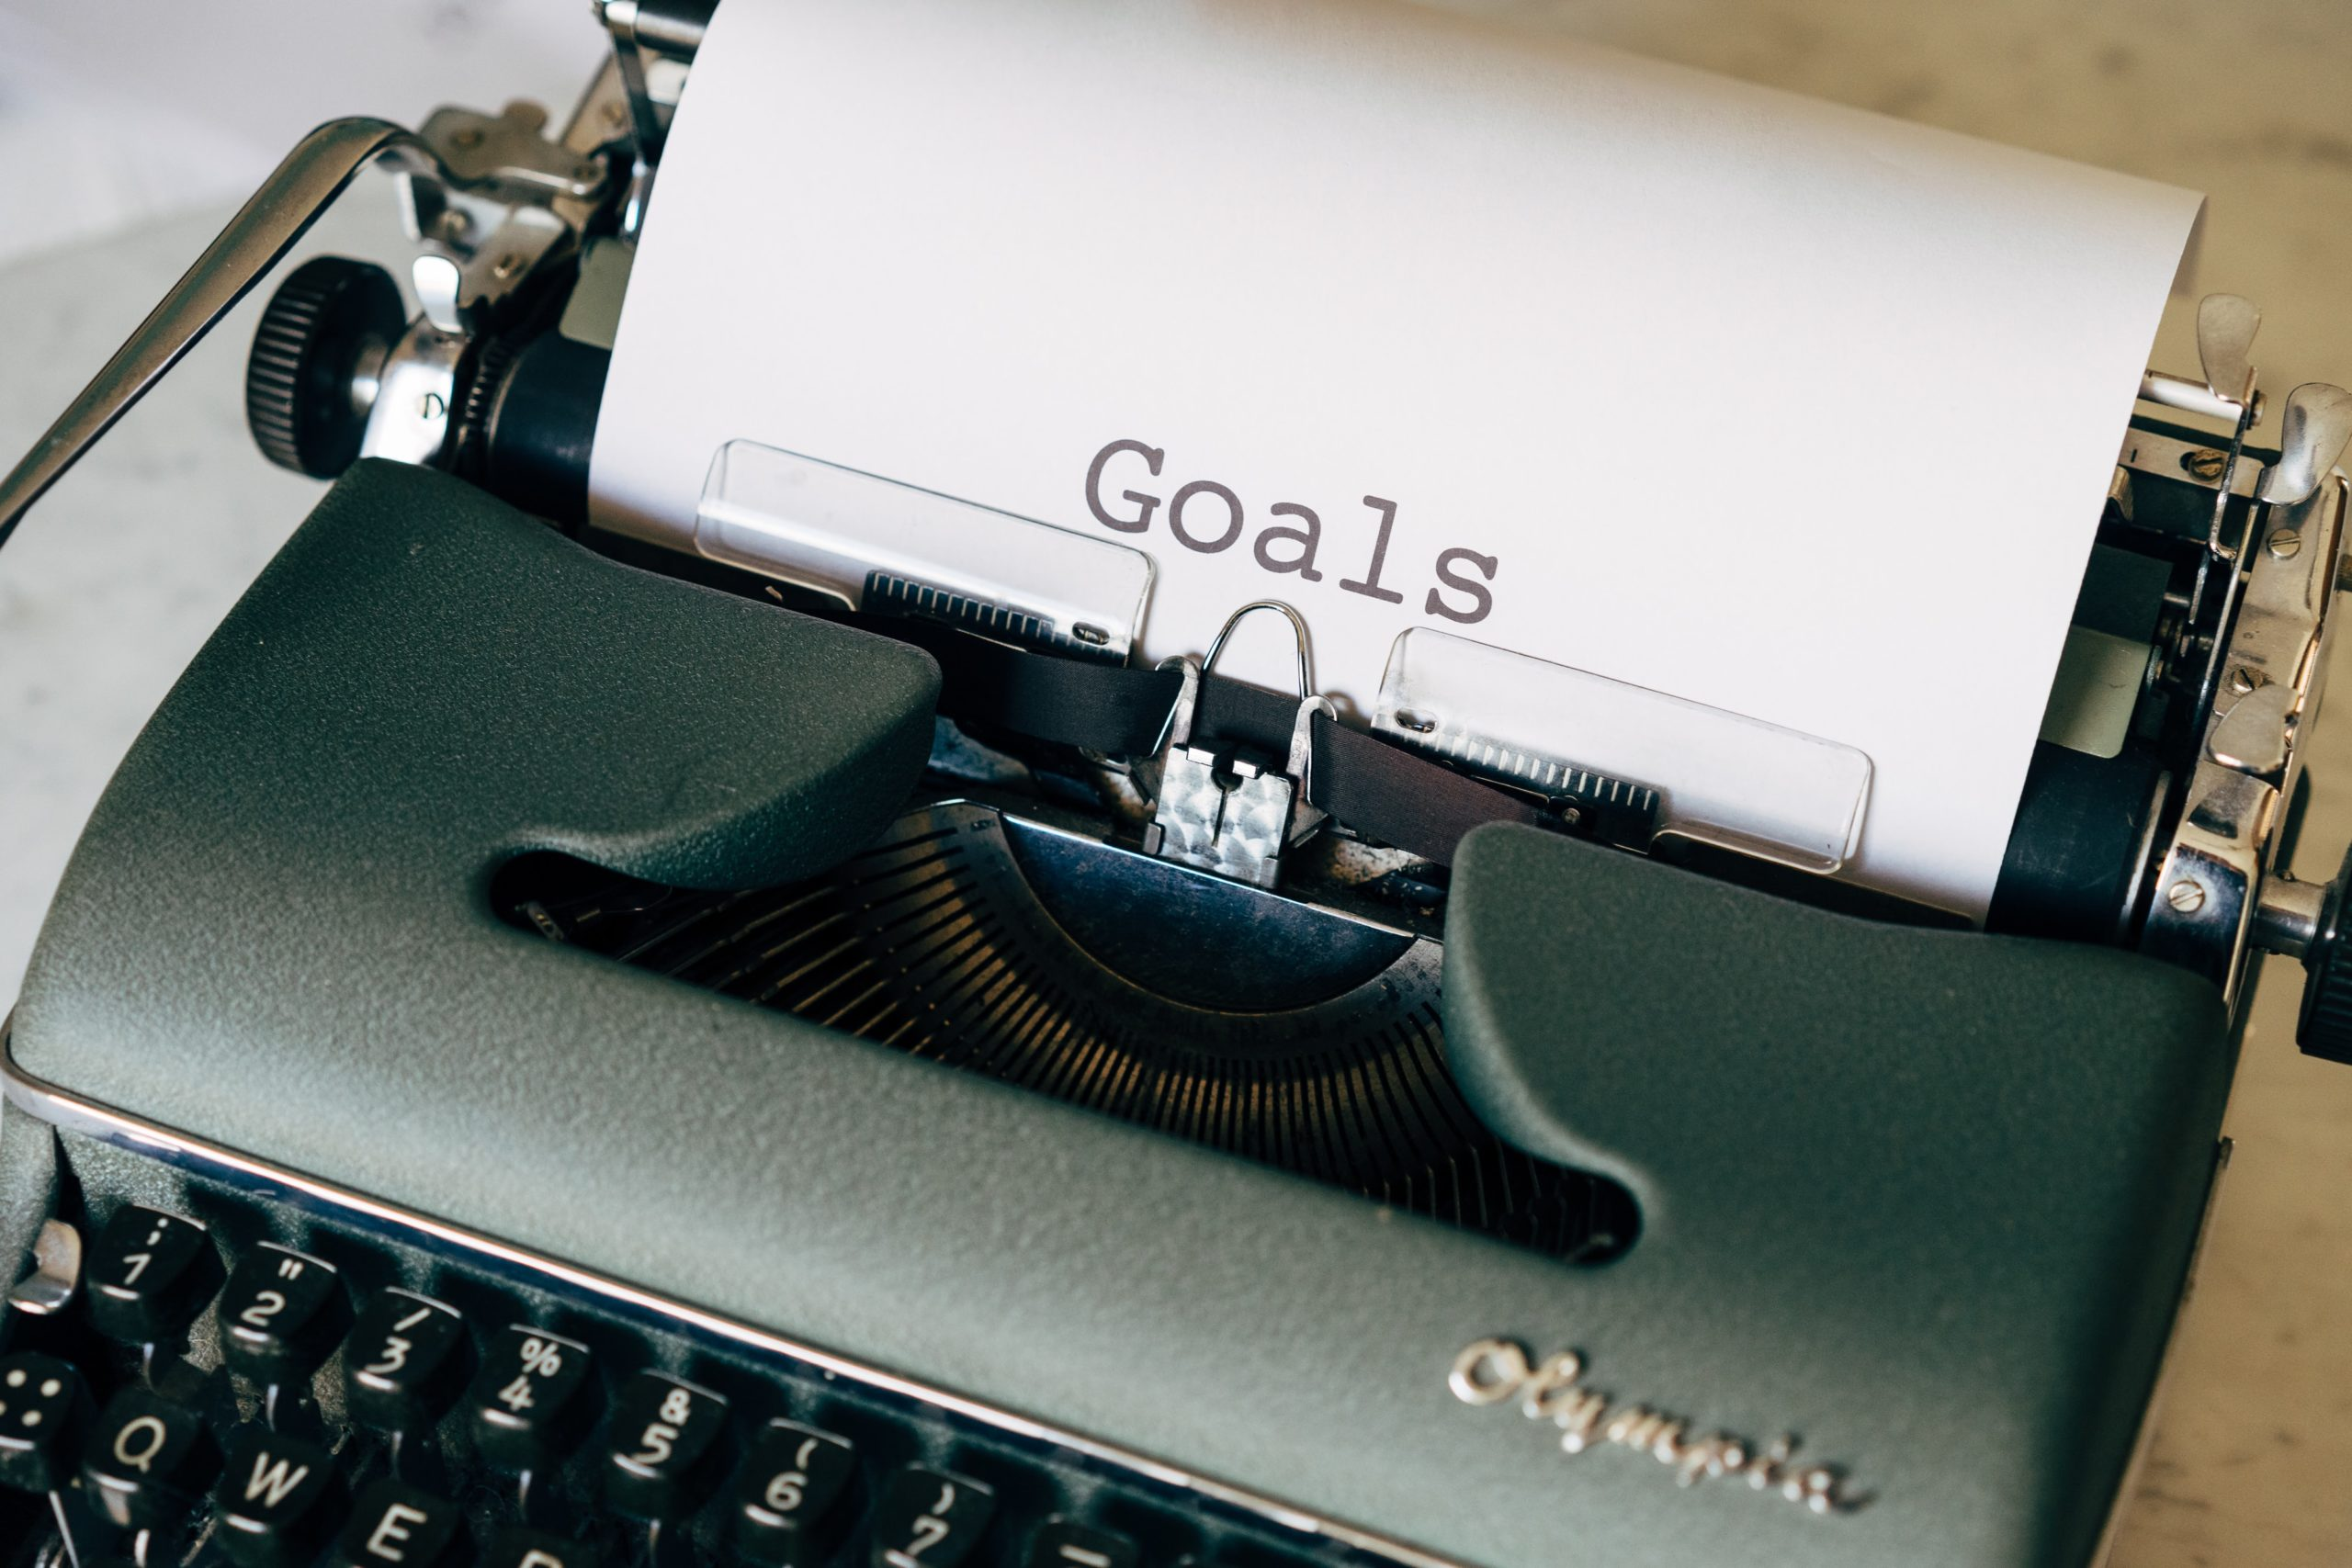 wjat is more powerful than goals